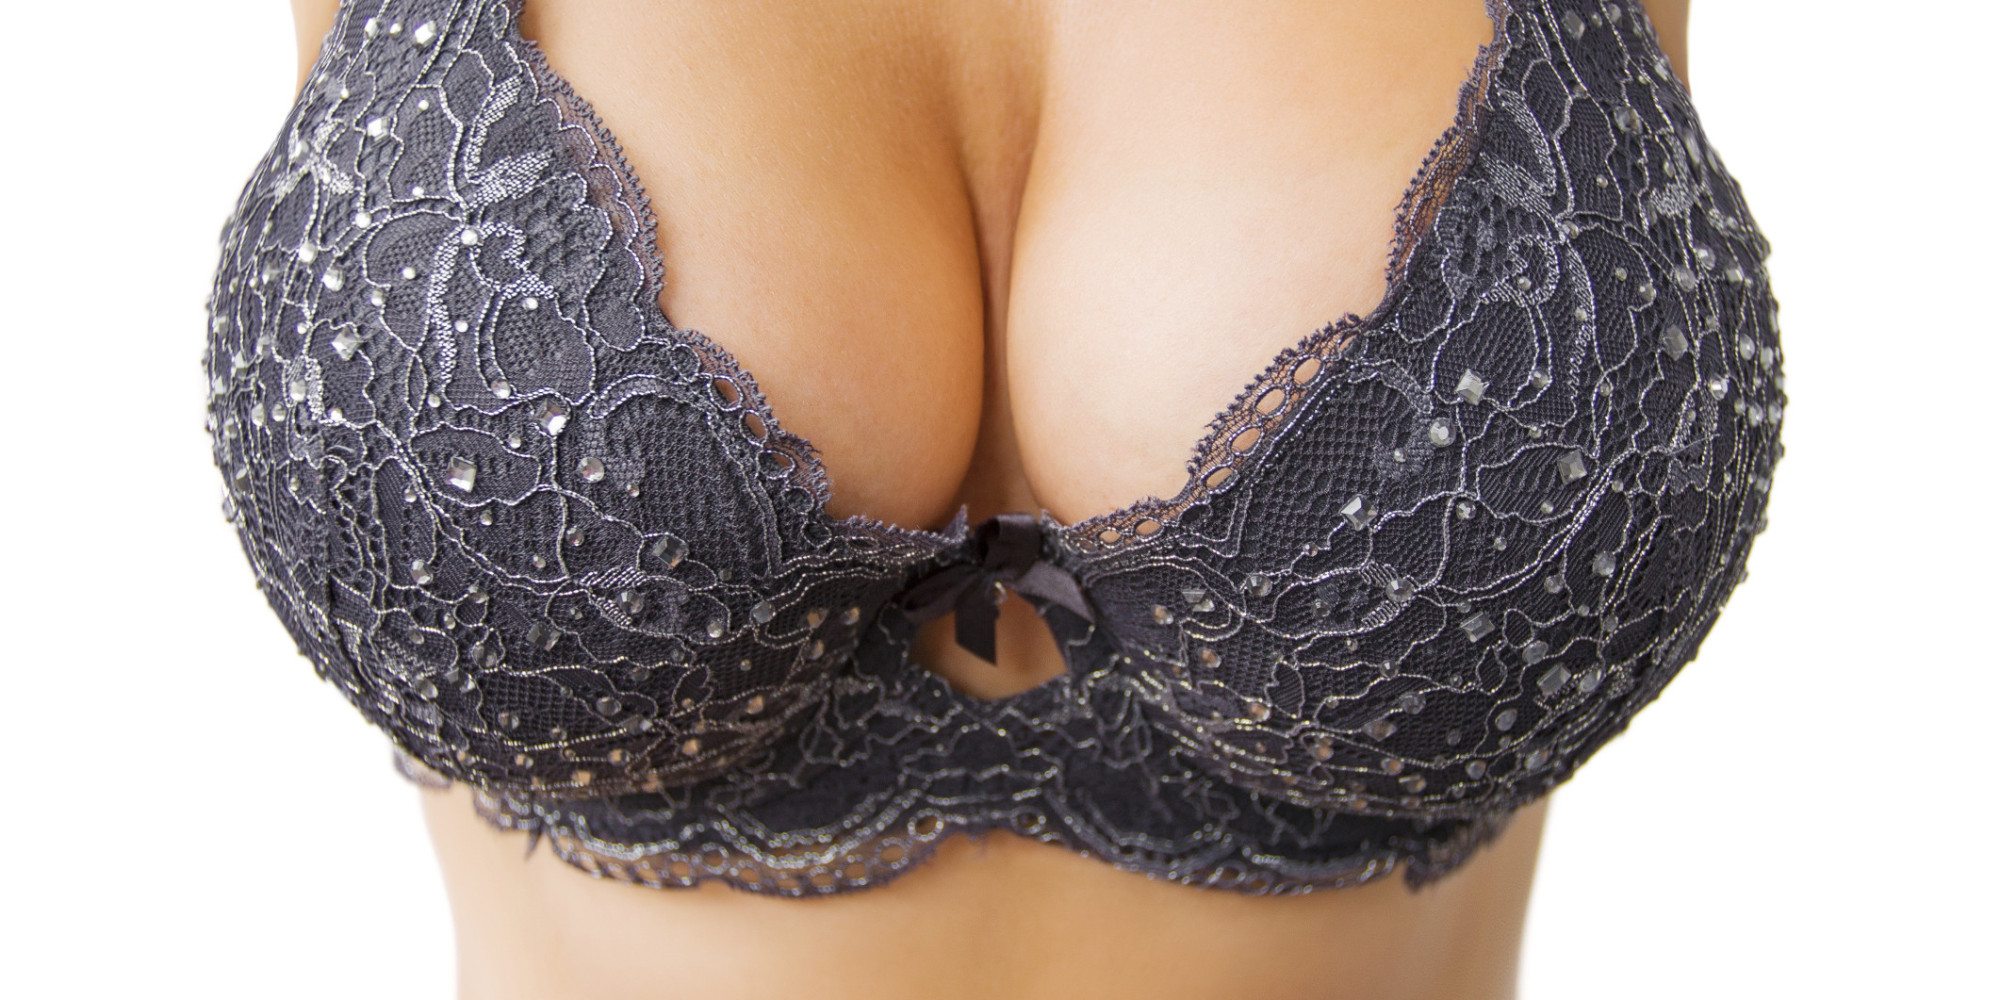 Big Breasts A Blessing Or A Curse  Huffpost-3816